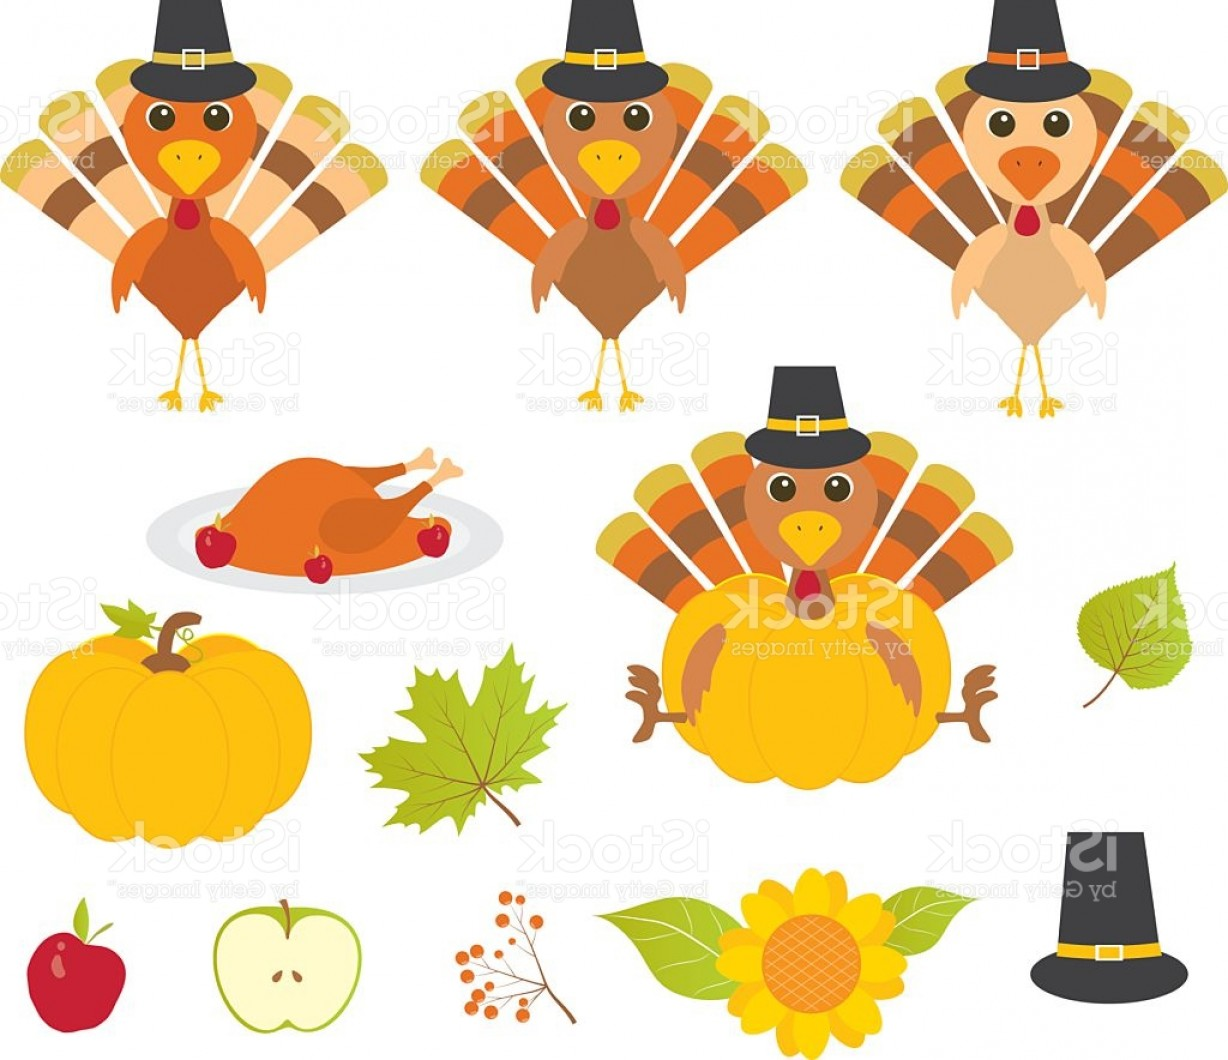 1228x1060 Turkey Vector Art Shopatcloth